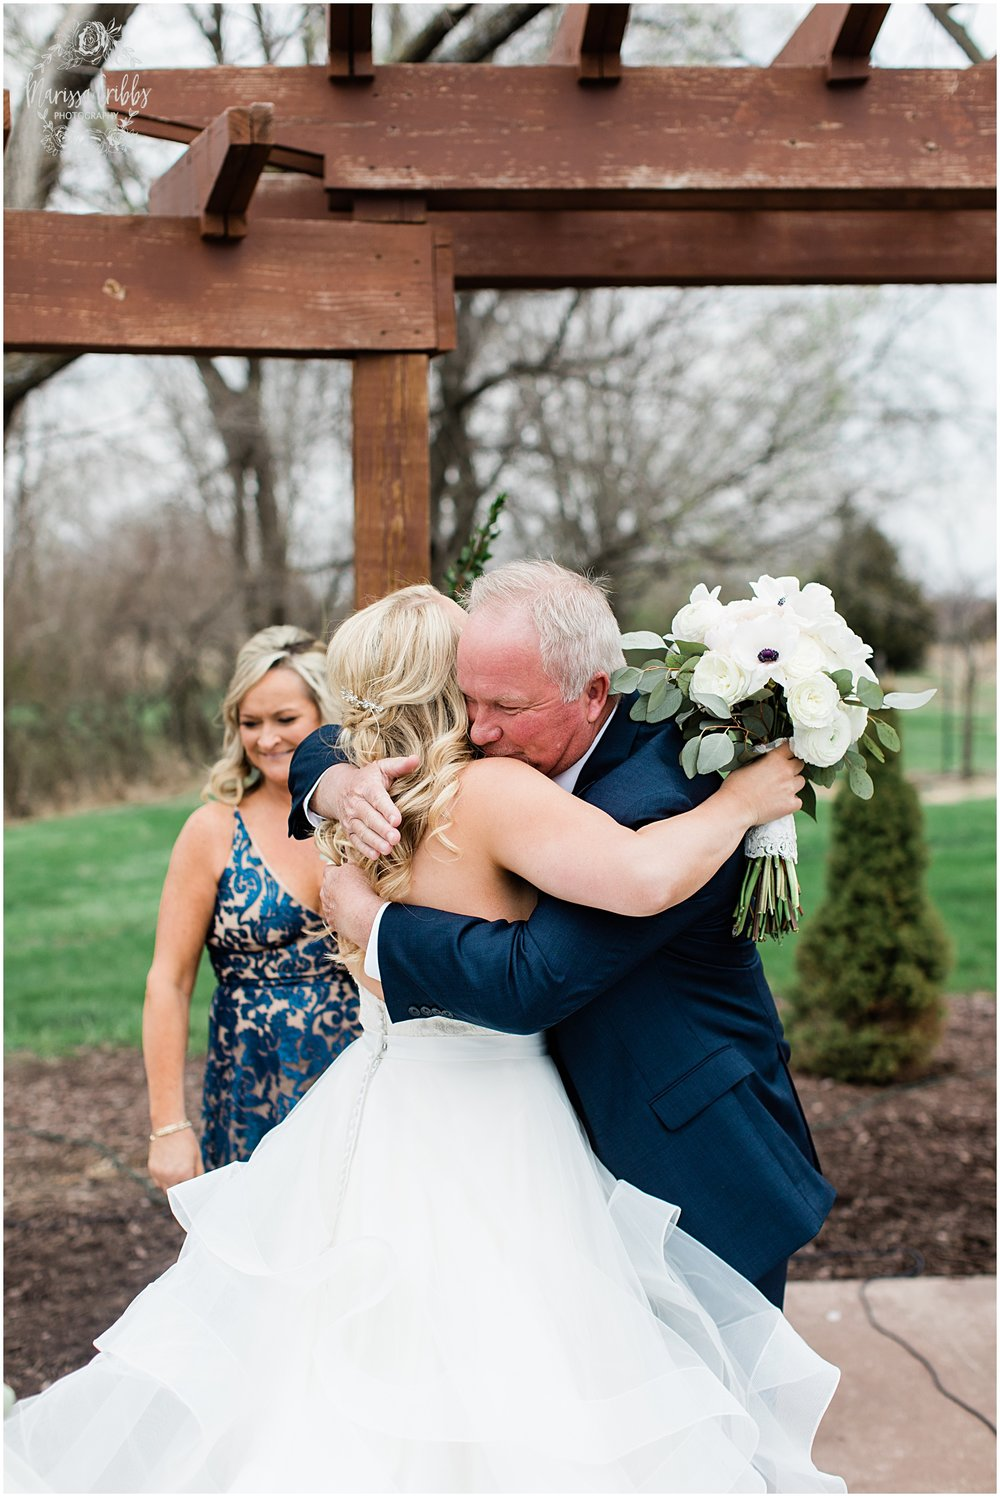 TILSON WEDDING | THE LEGACY AT GREEN HILLS | SIMPLE ELEGANCE | MARISSA CRIBBS PHOTOGRAPHY_4699.jpg